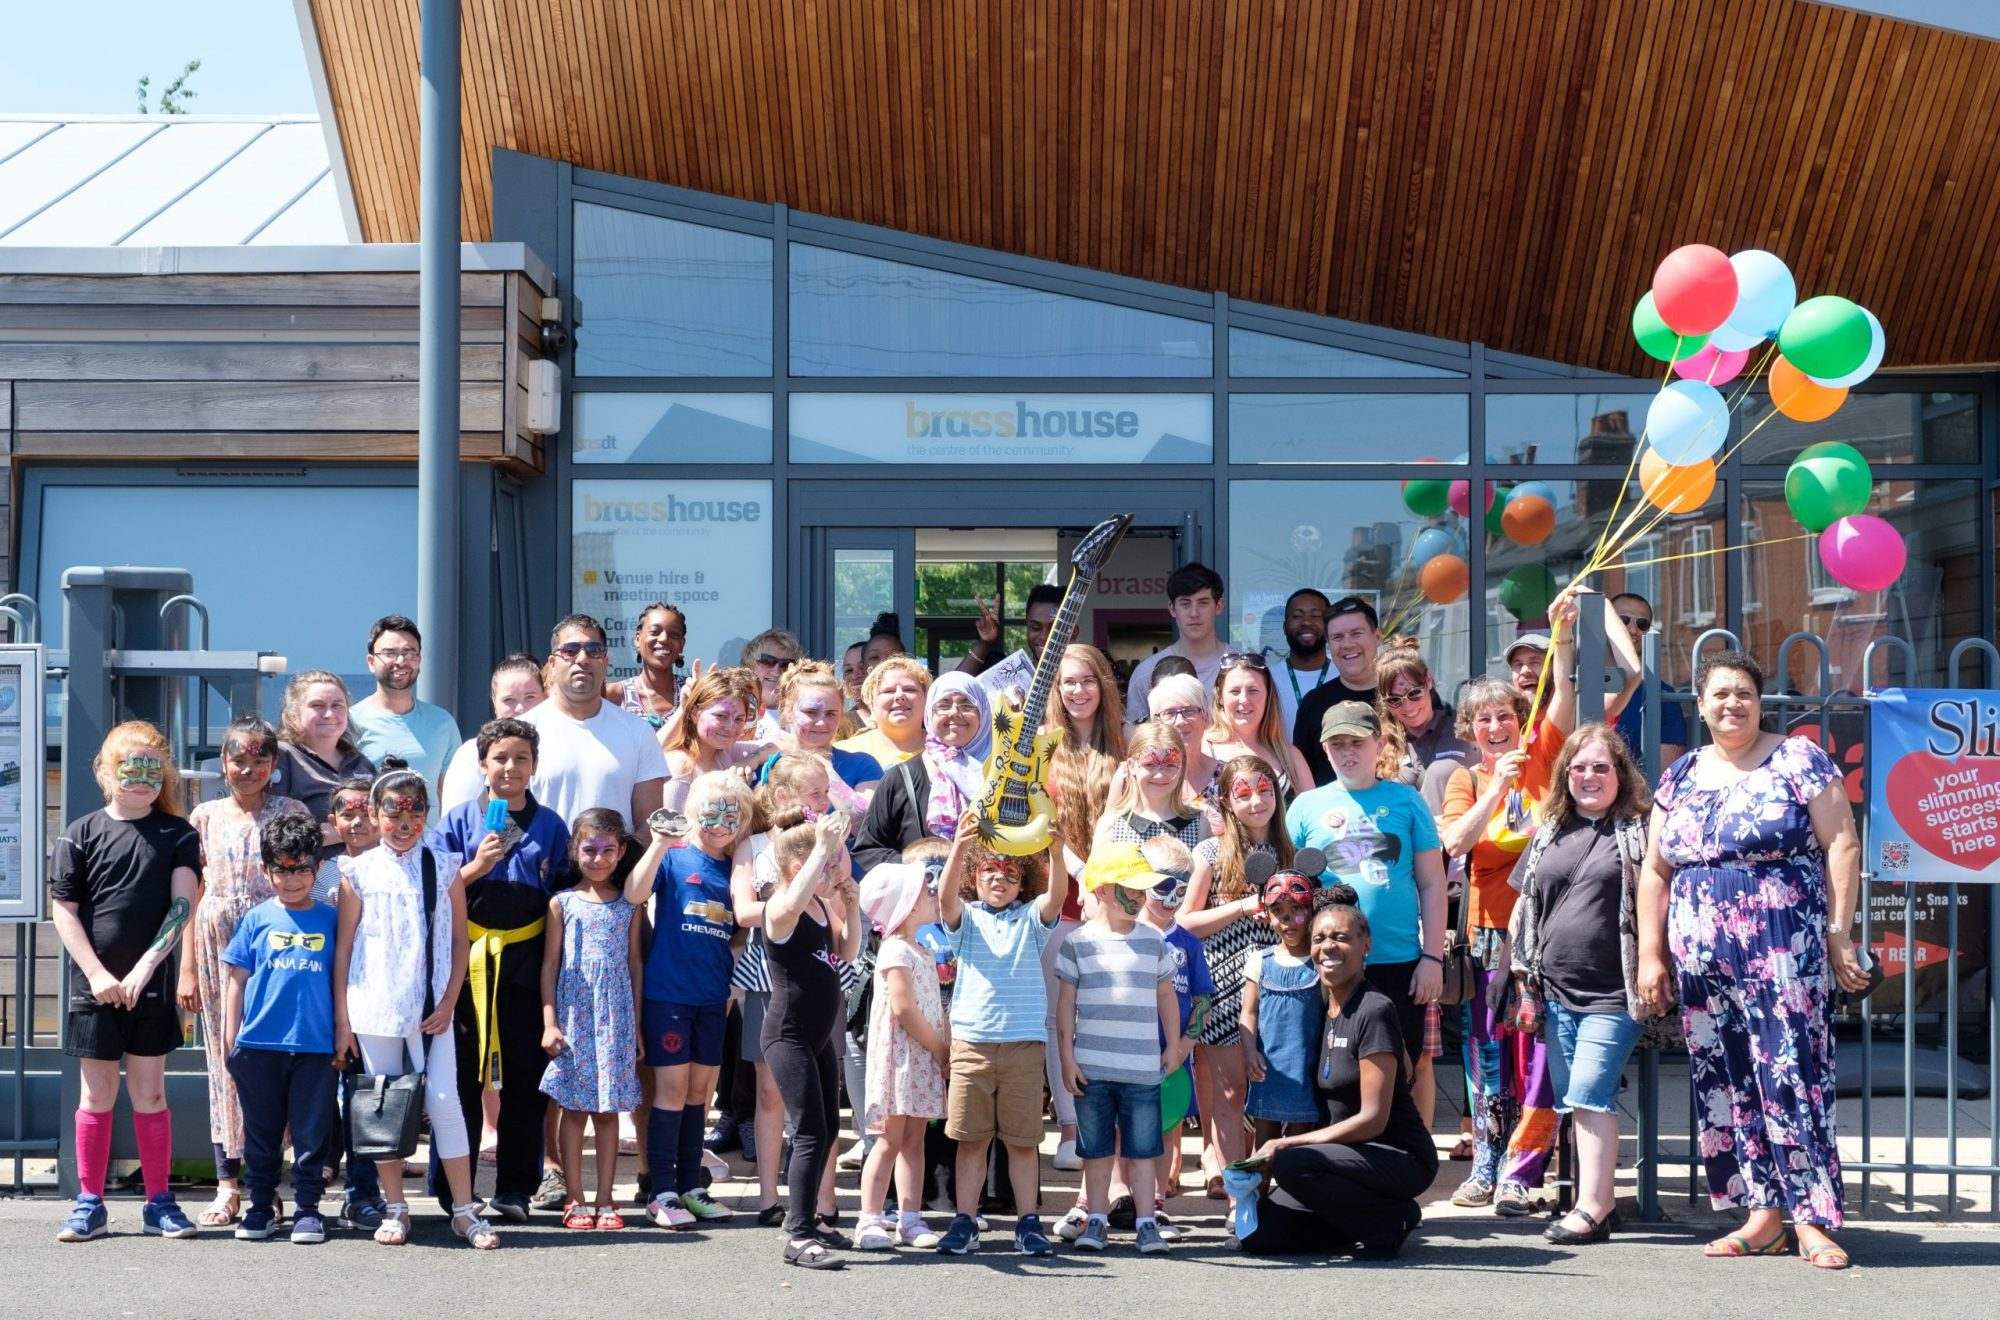 Community centres – the centre of communities